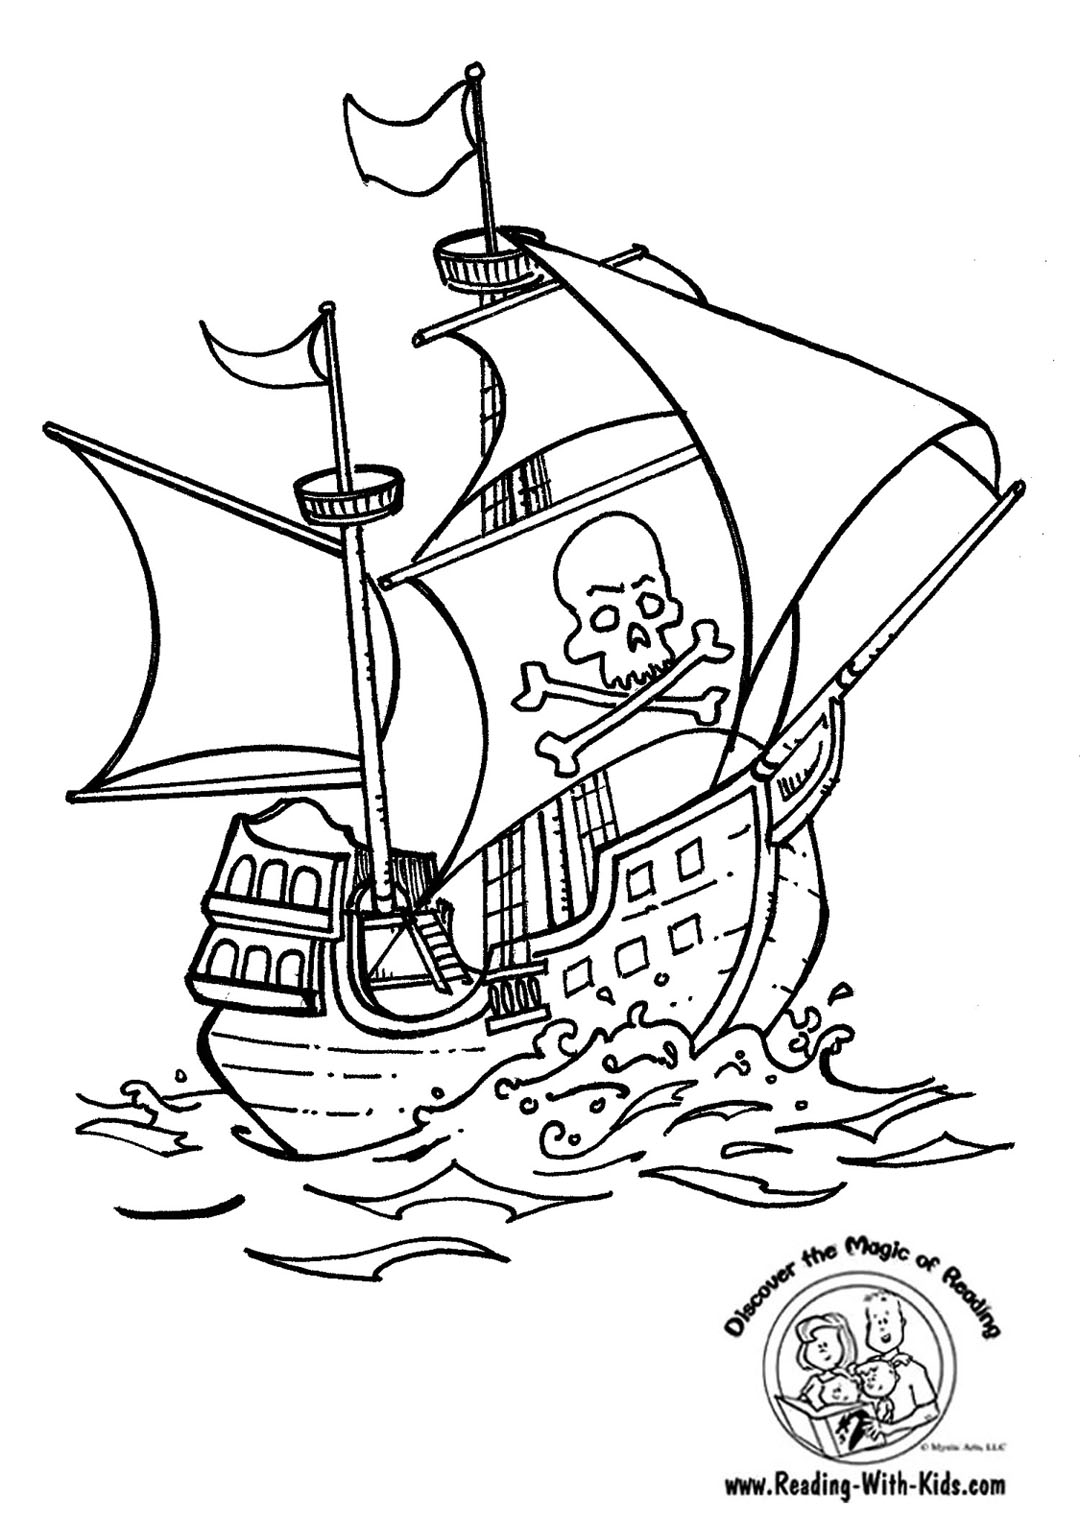 pirate coloring pirate coloring pages to download and print for free pirate coloring 1 1